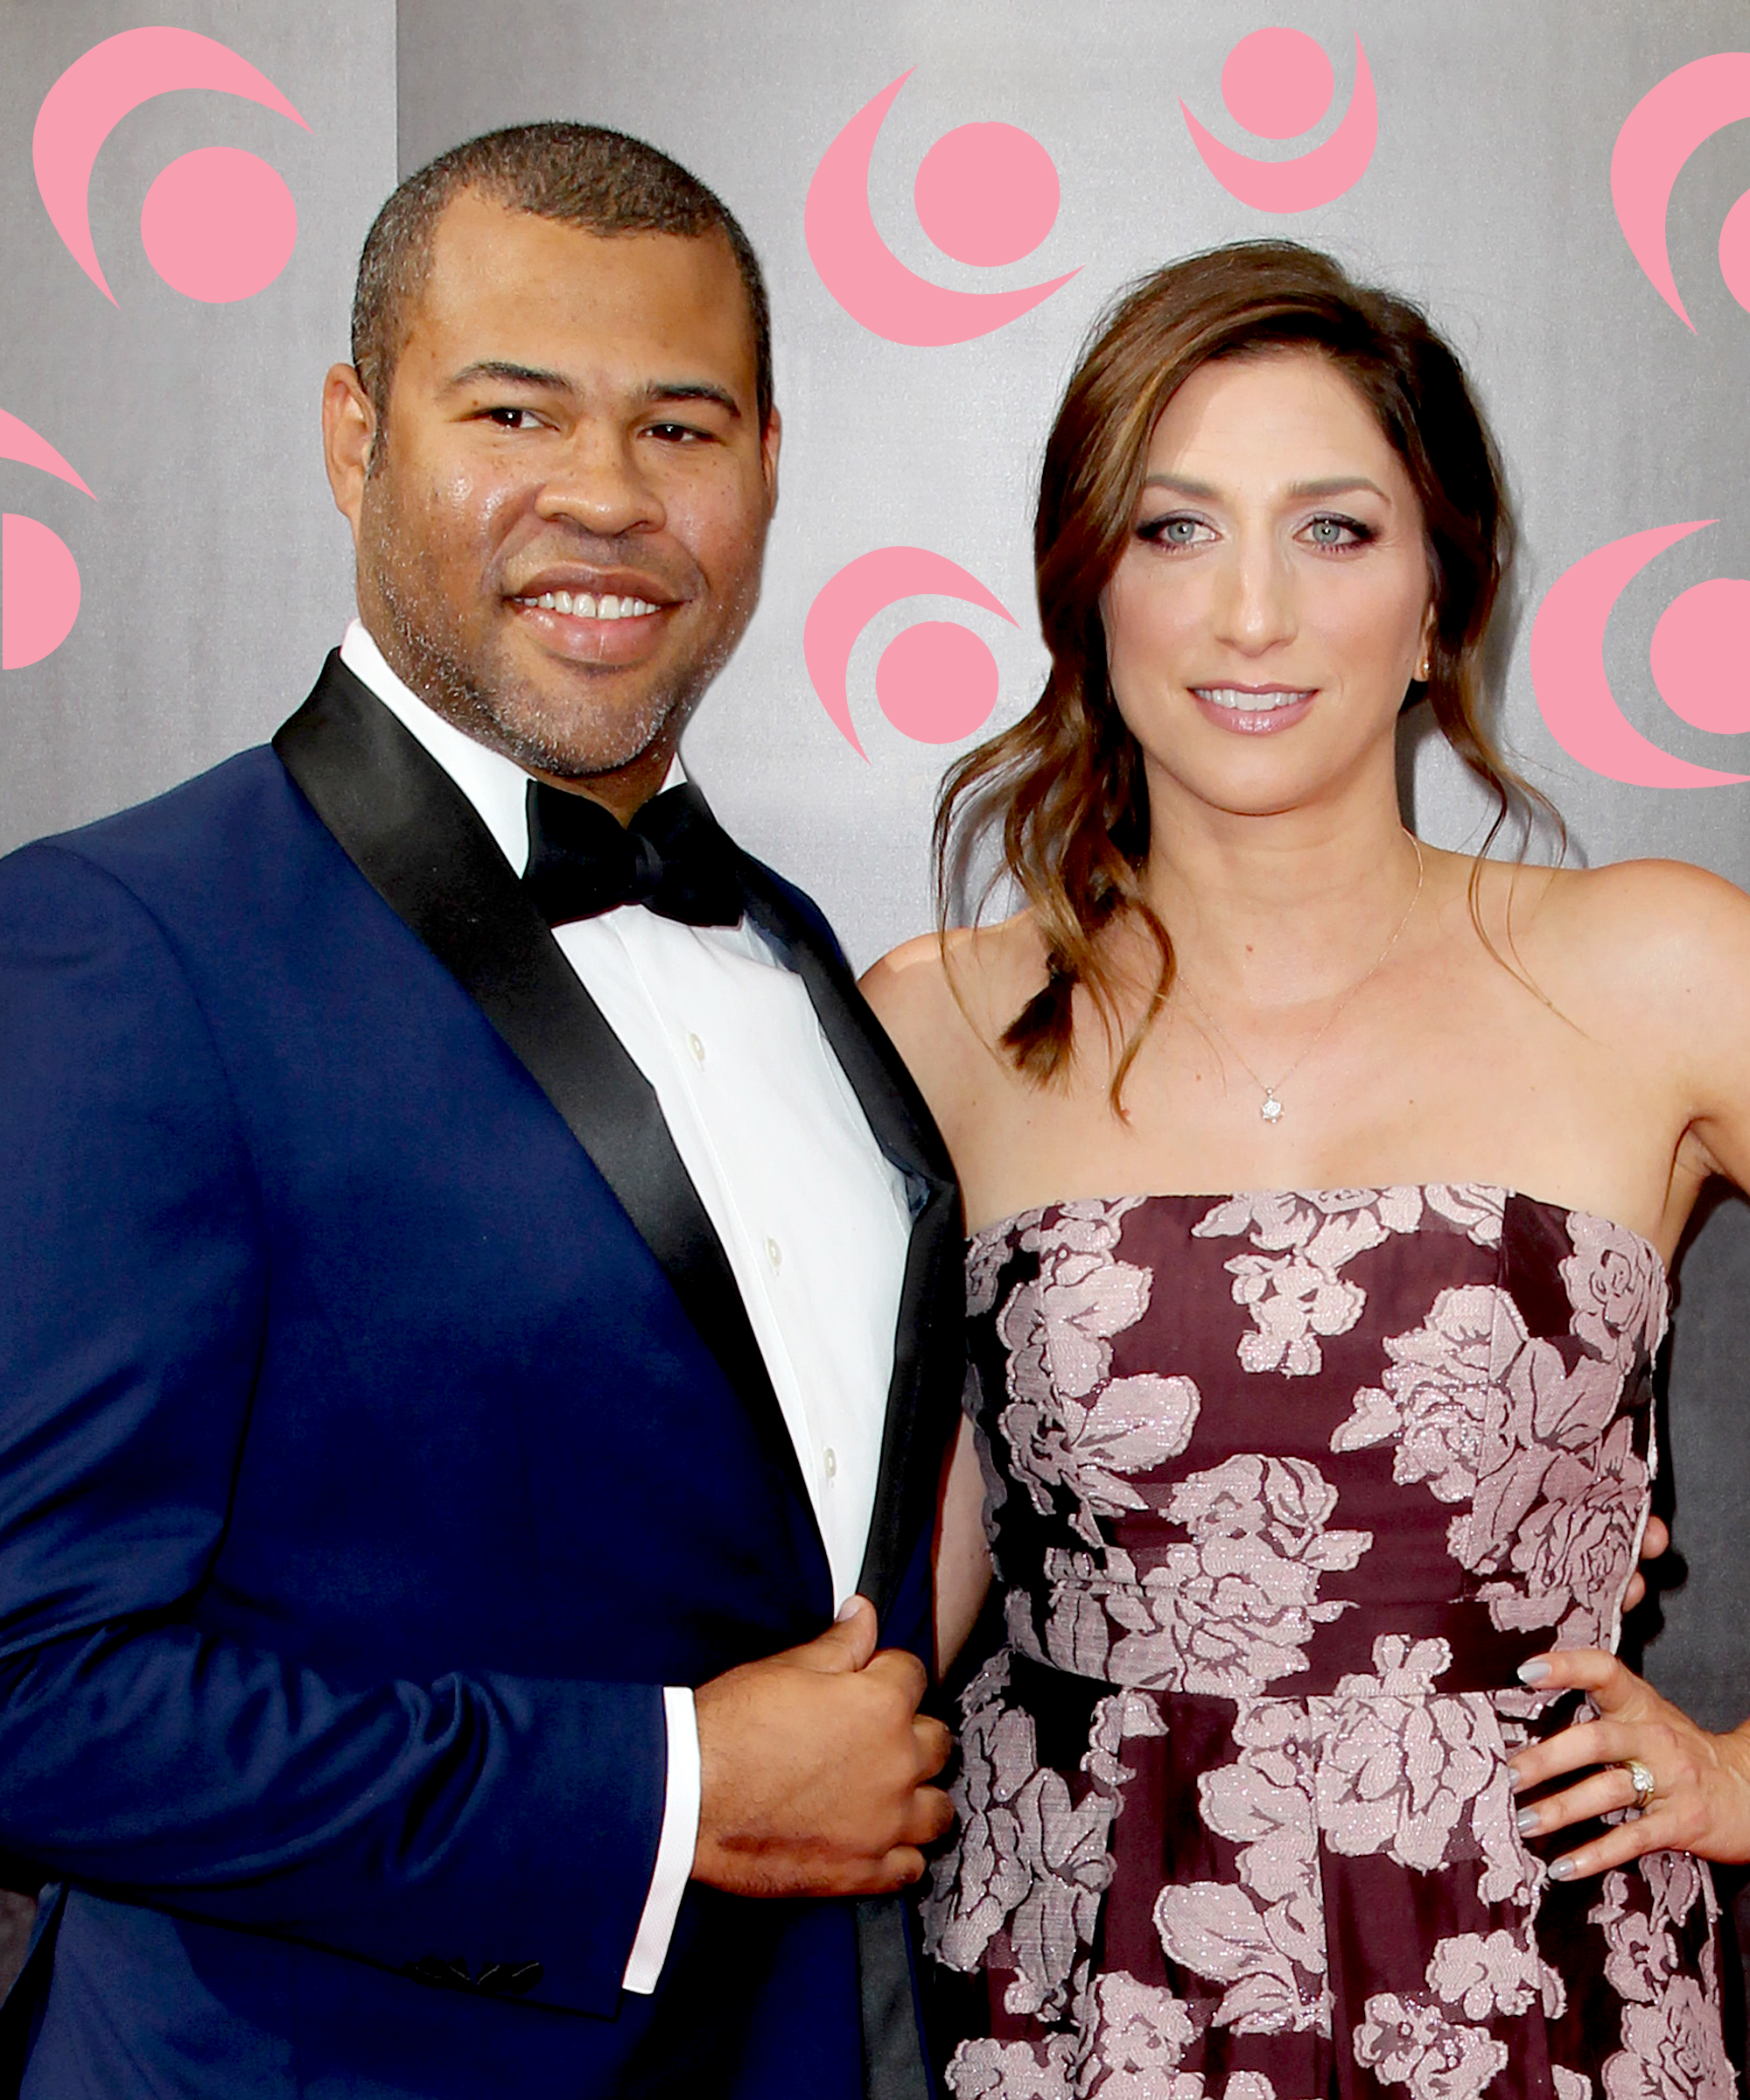 Jordan Peele S White Wife Is A Non Issue